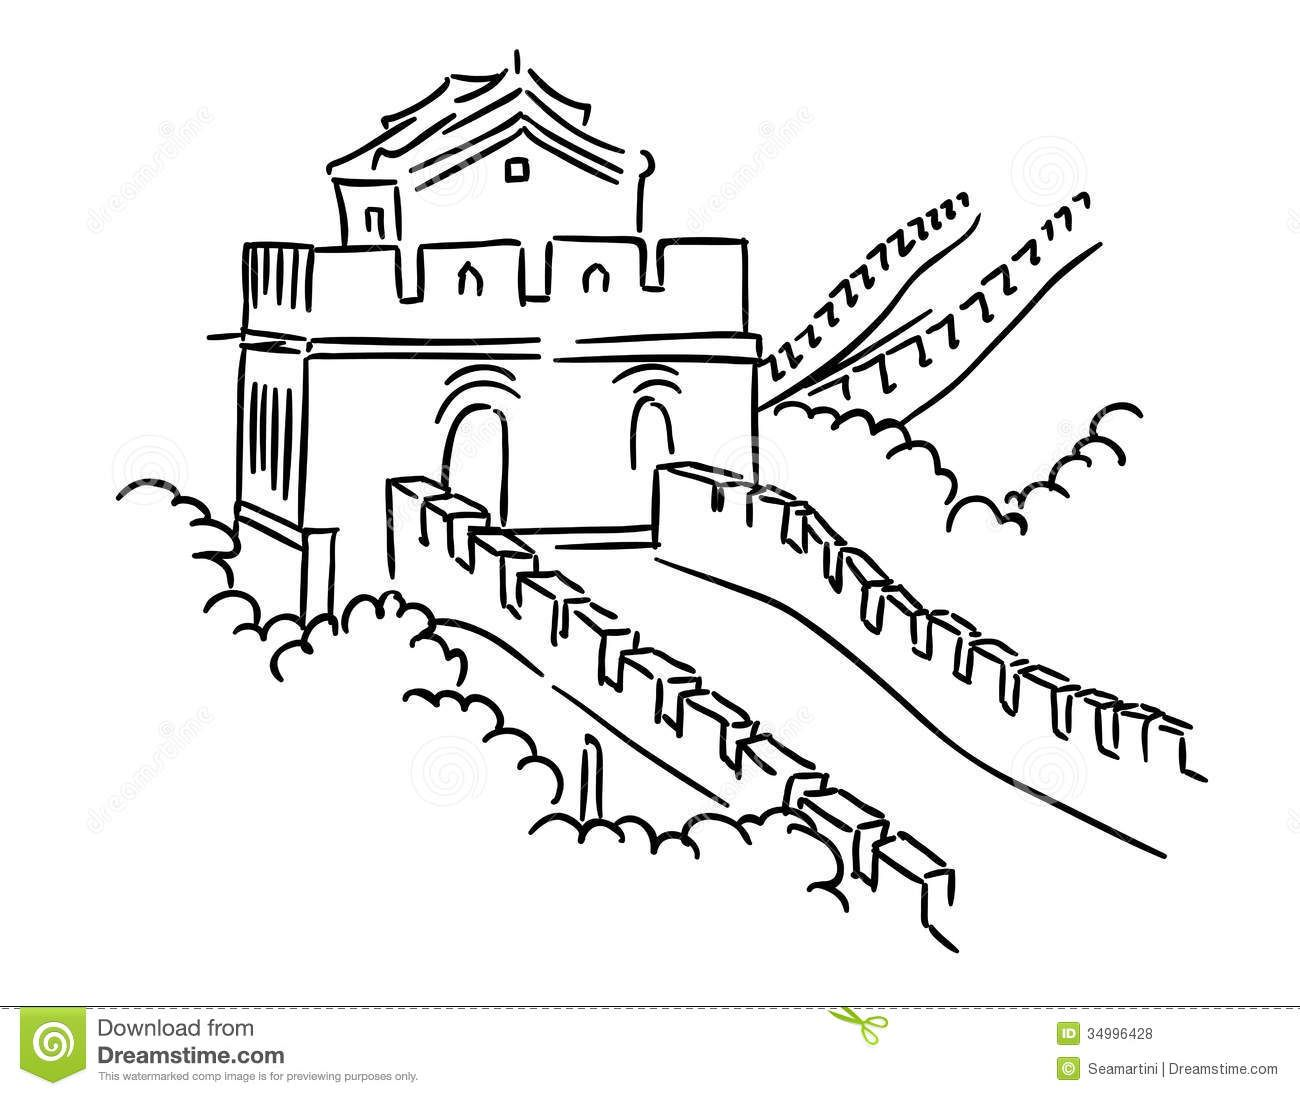 Great wall of china black and white clipart clipart library library CLIPART WALLPAPER BLINK - Great Wall Of China Clipart cartoon 26 ... clipart library library